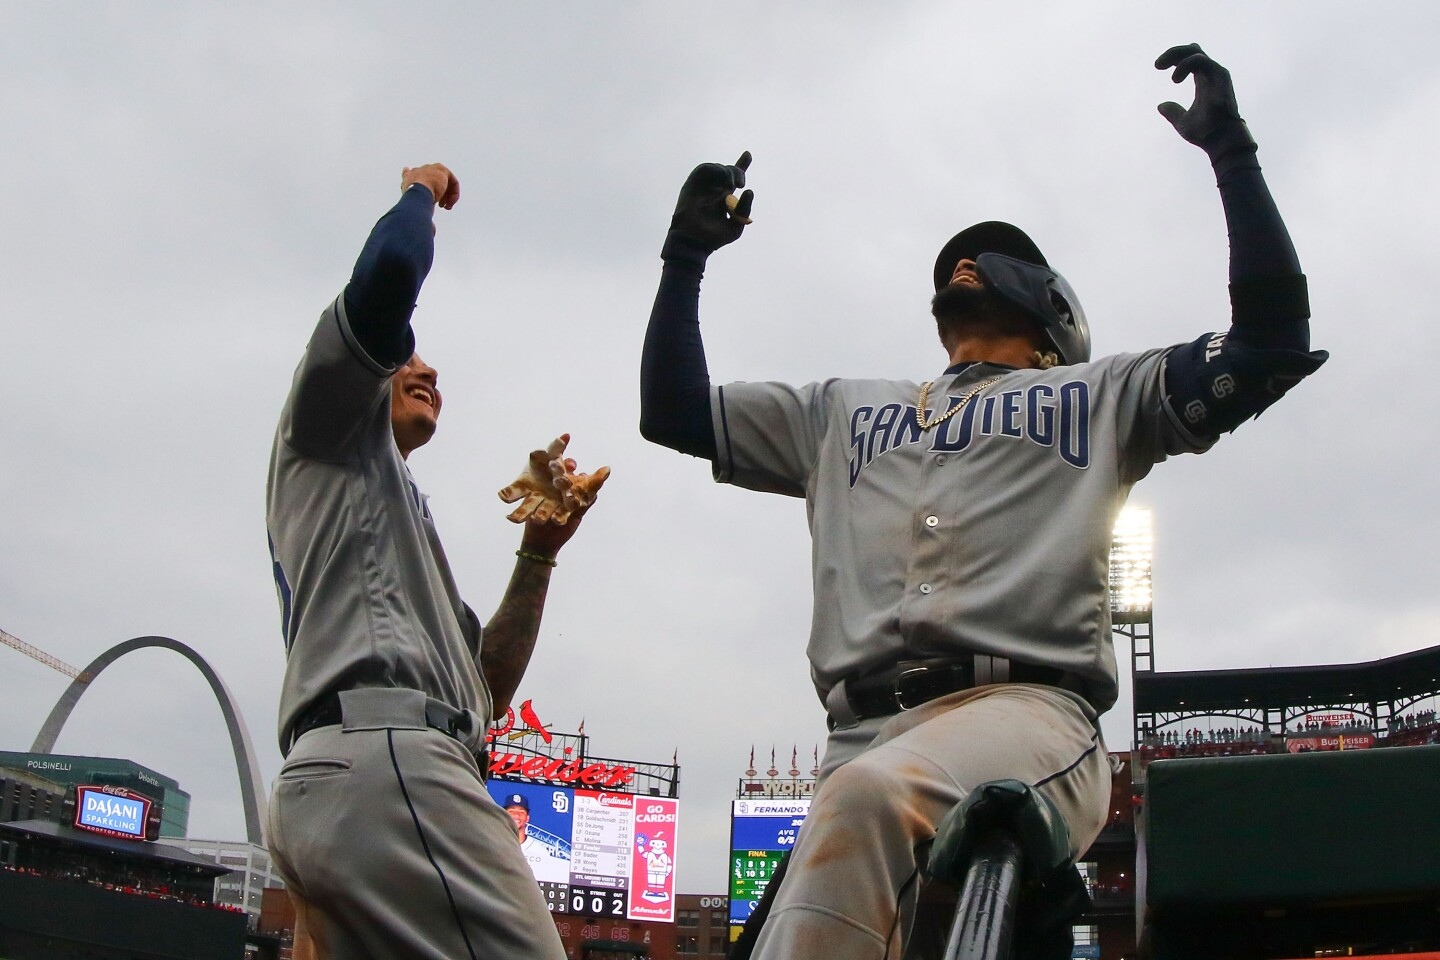 ST. LOUIS, MO - APRIL 5: Manny Machado #13 of the San Diego Padres congratulates Fernando Tatis Jr. #23 of the San Diego Padres after Tatis Jr. hits two-run home run against the St. Louis Cardinals in the seventh inning at Busch Stadium on April 5, 2019 in St. Louis, Missouri. (Photo by Dilip Vishwanat/Getty Images) ** OUTS - ELSENT, FPG, CM - OUTS * NM, PH, VA if sourced by CT, LA or MoD **